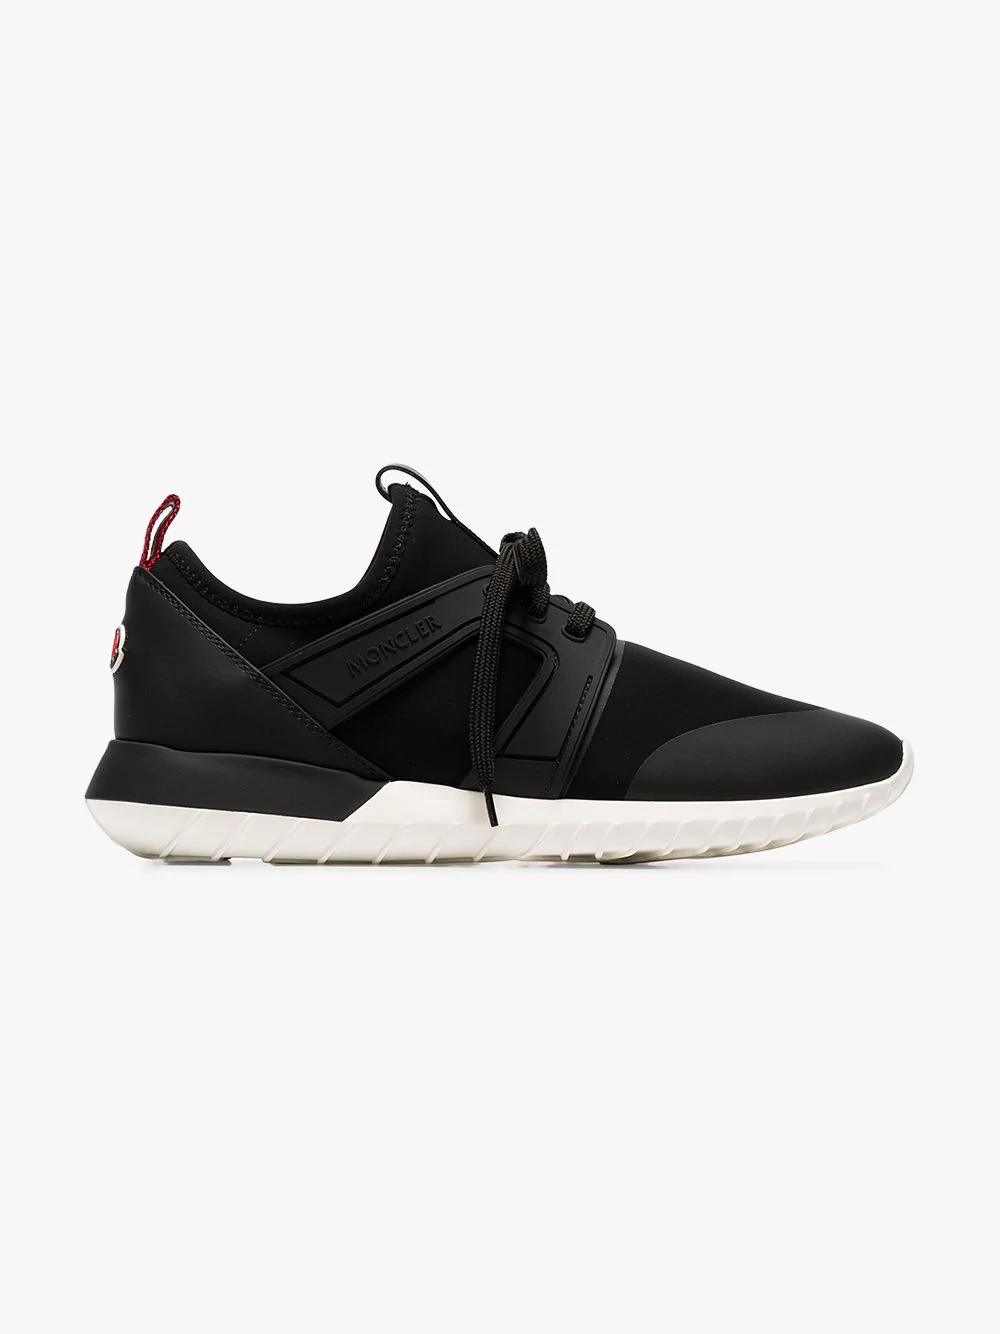 Moncler Meline Neoprene And Leather Low-top Trainers In Black